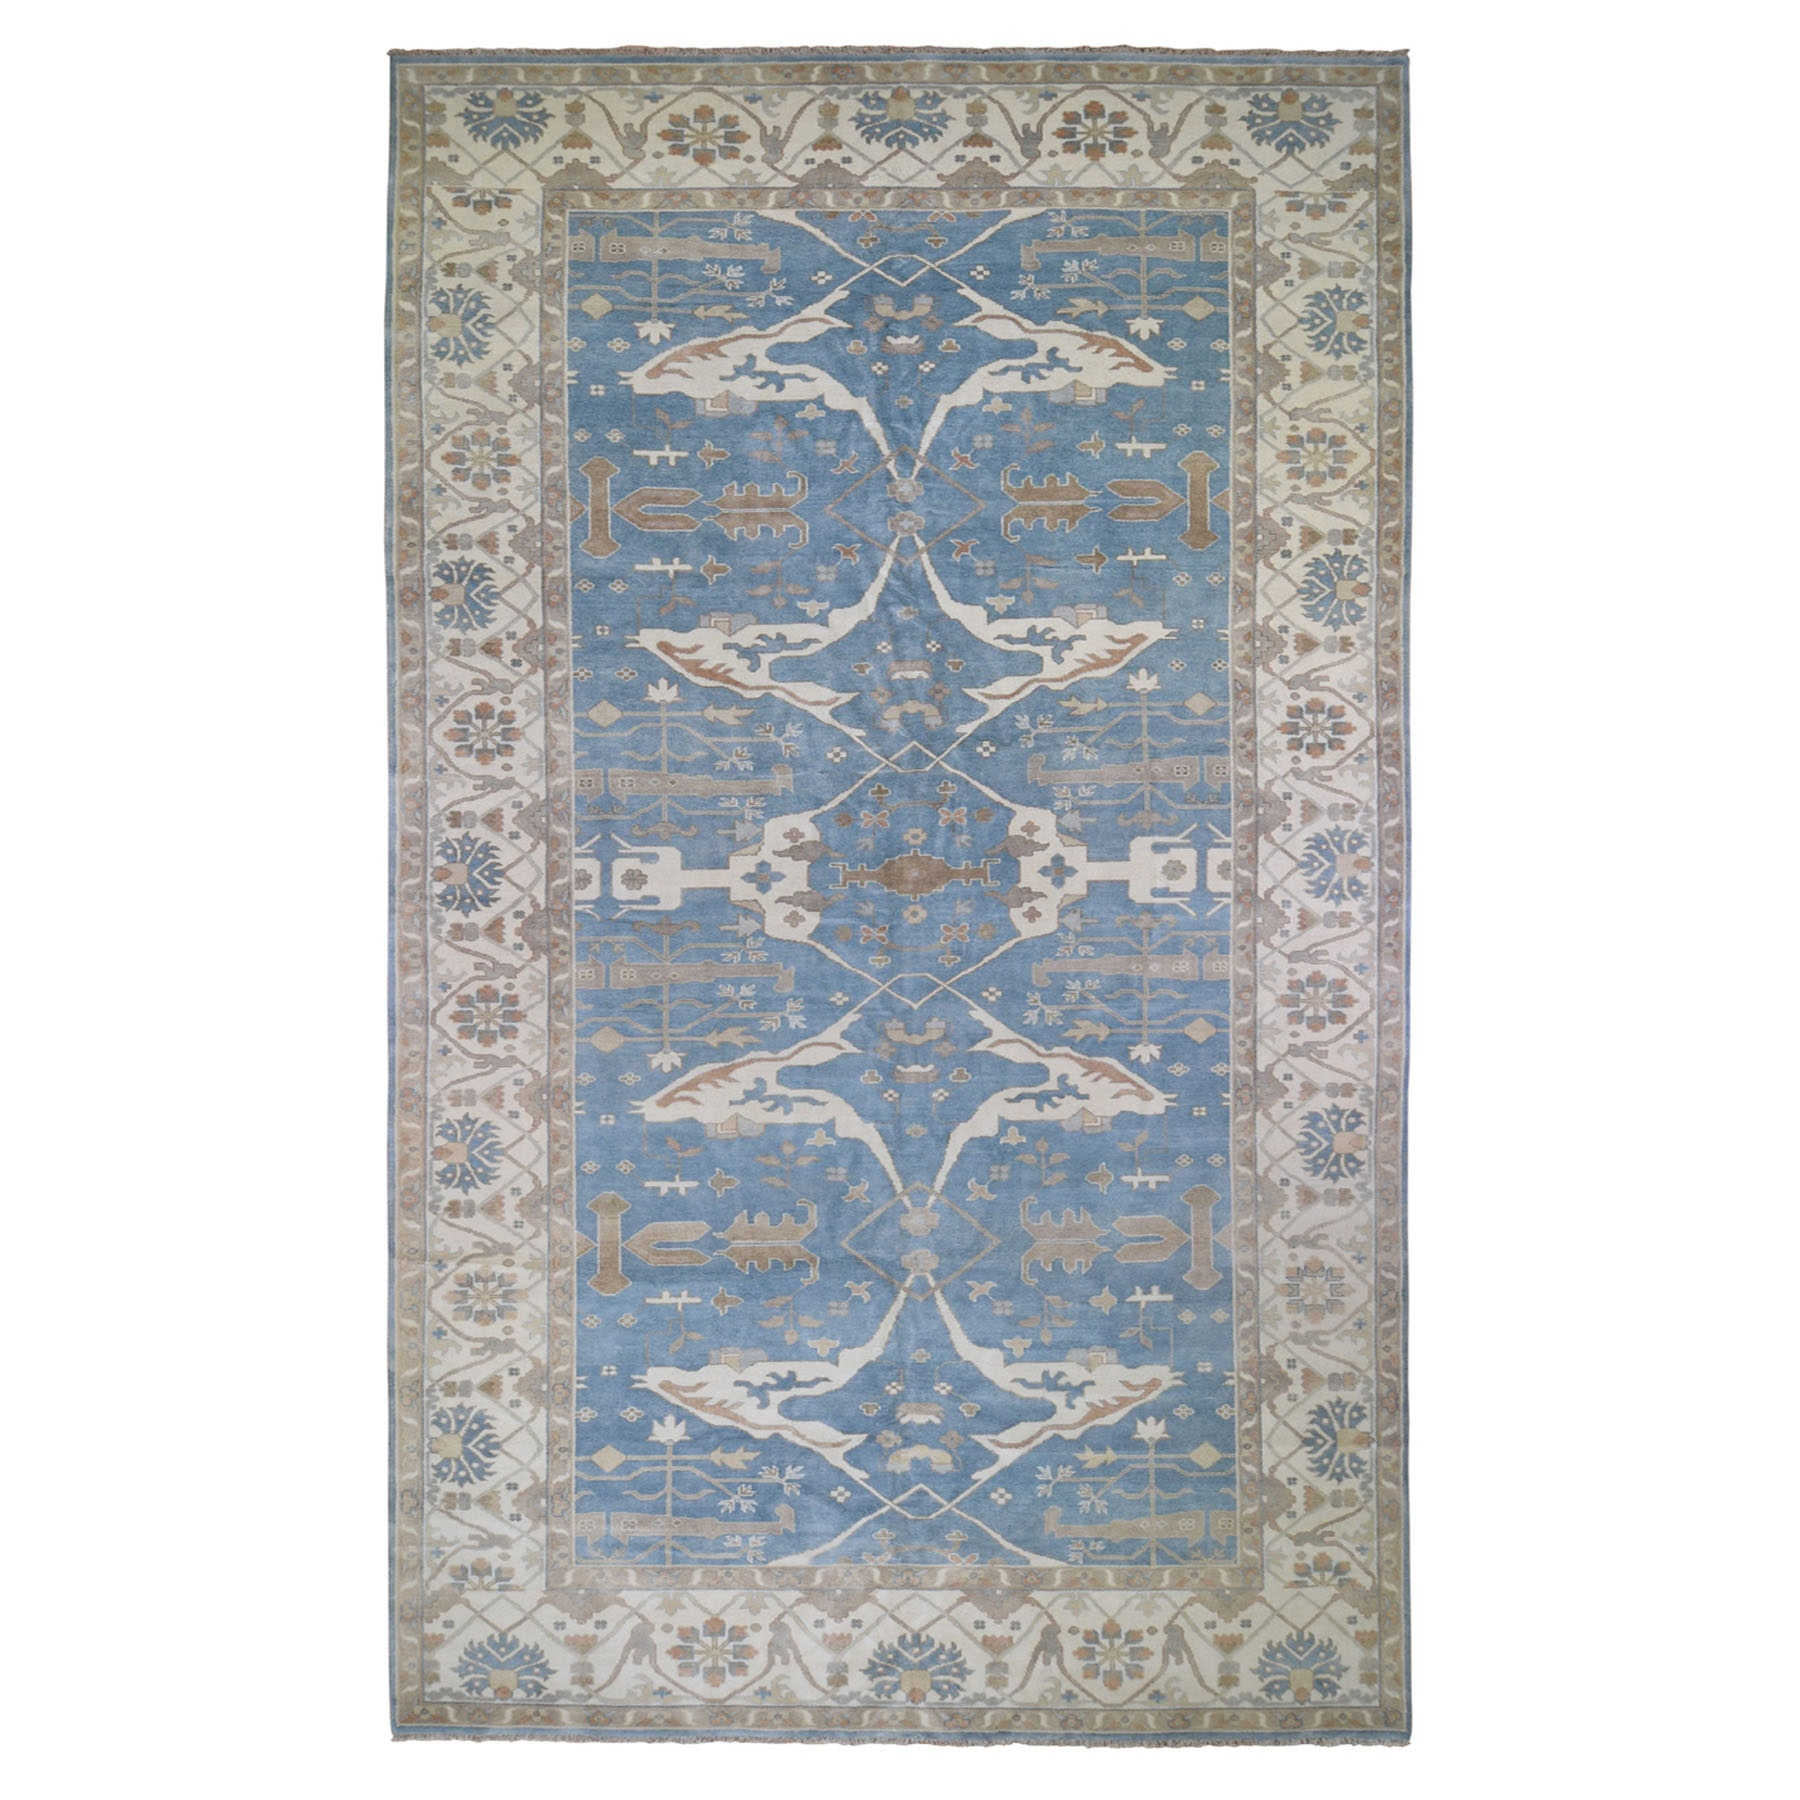 """9'8""""X19'10"""" Sky Blue Gallery Size Oushak Pure Wool Hand Knotted Oriental Rug moad976d"""